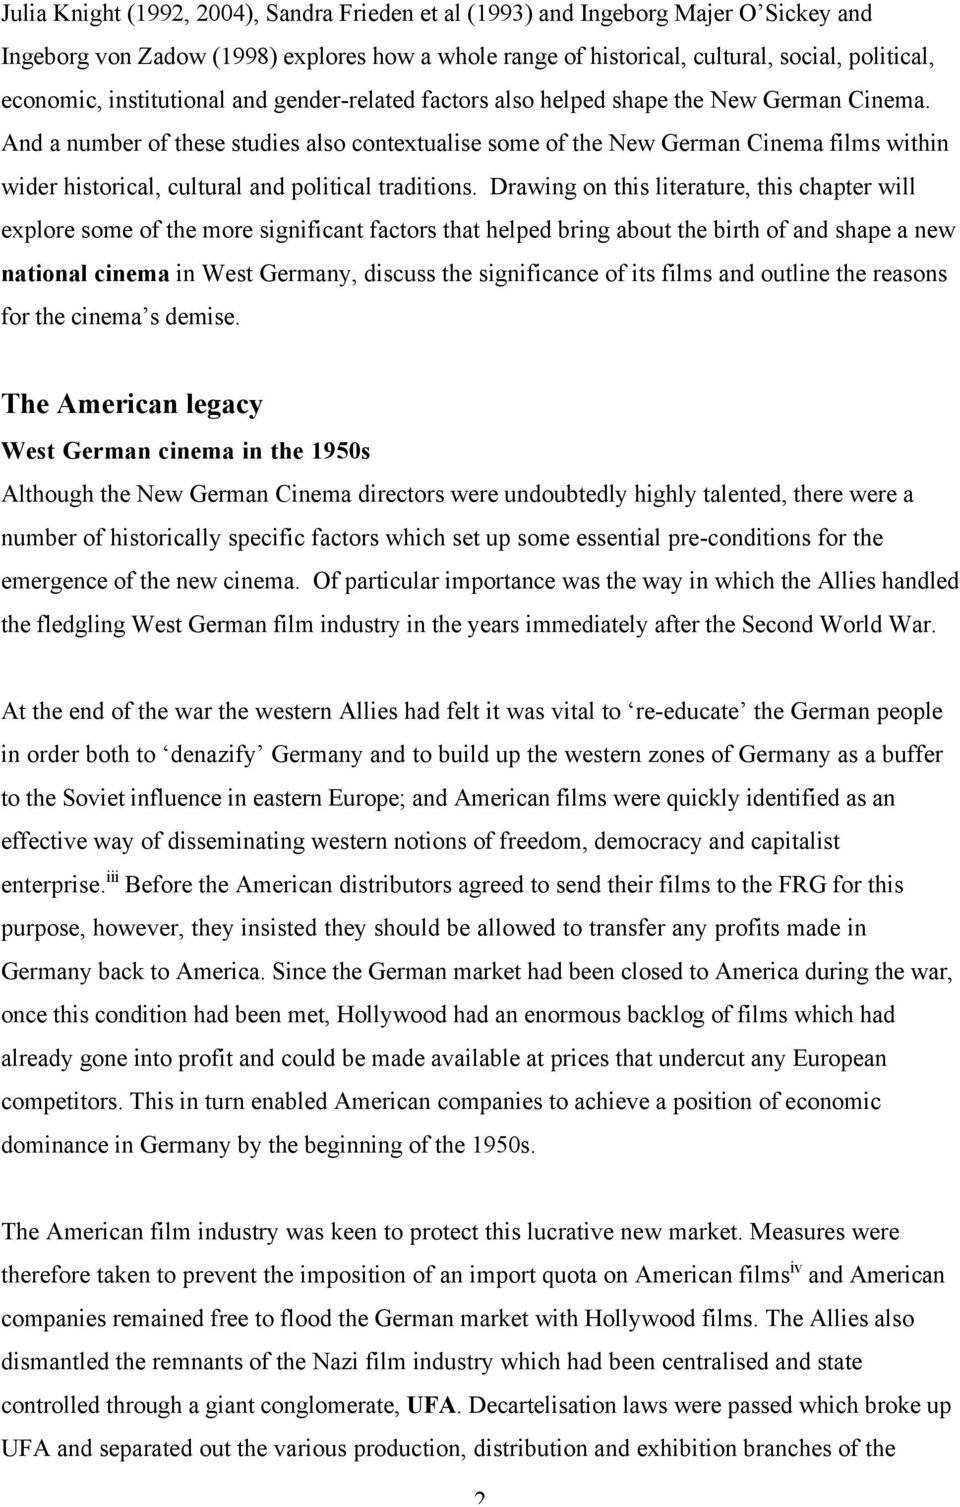 And a number of these studies also contextualise some of the New German Cinema films within wider historical, cultural and political traditions.